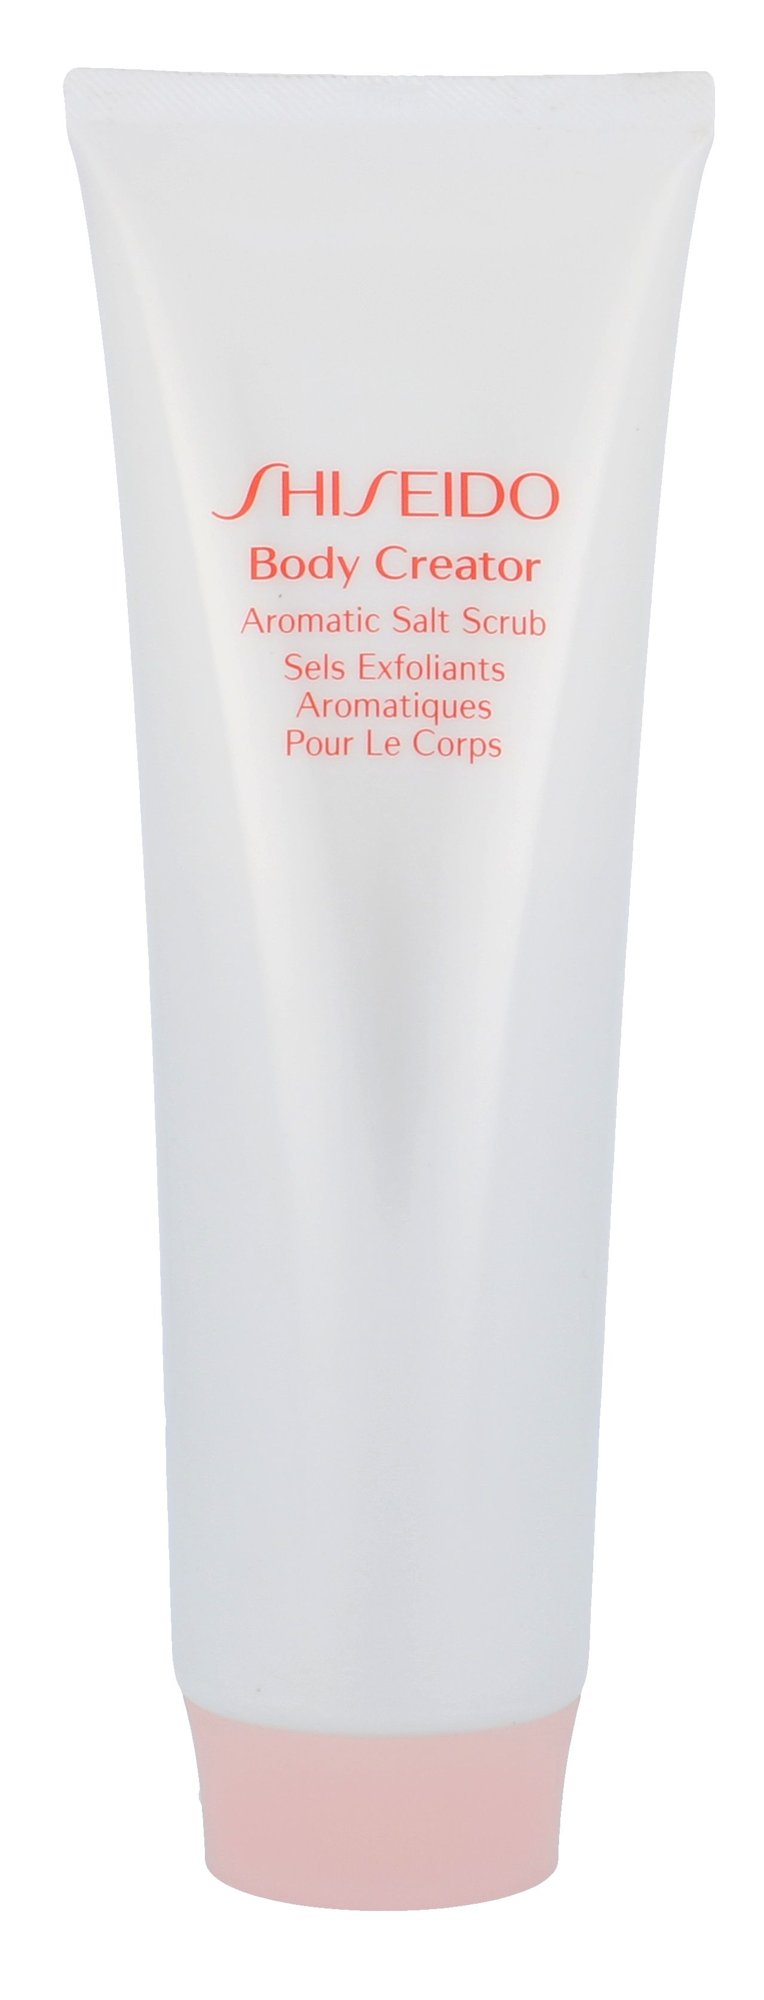 Shiseido Body Cosmetic 200ml